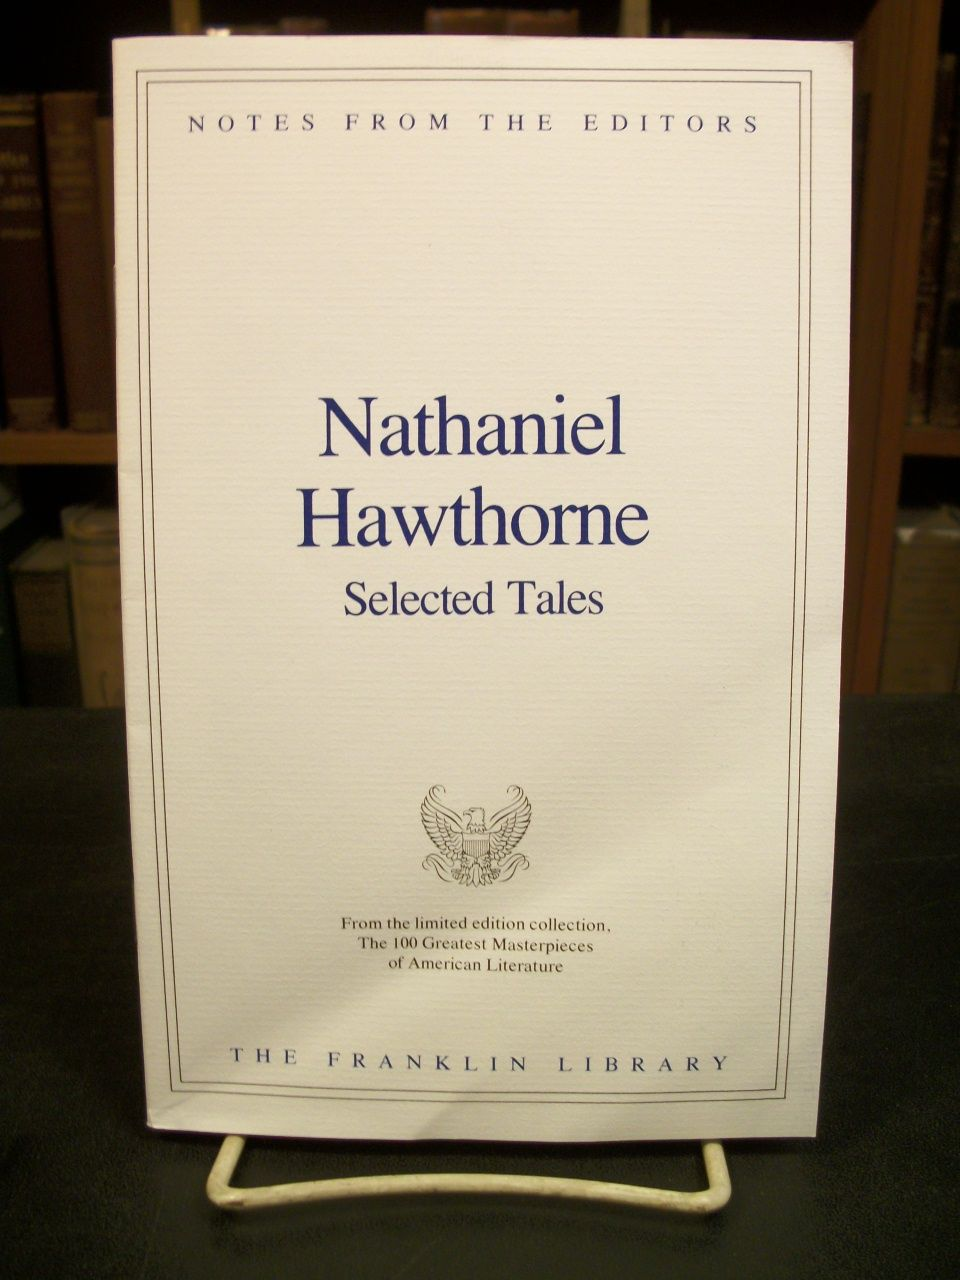 the life and literary masterpieces of nathaniel hawthorne Many great writers have influenced and reshaped our literature, and nathaniel hawthorne is one of them he faced his the puritan view of life itself was considered to be allegorical, their theology rested primarily on the idea of predestination and the separation of the saved and the damned as evident show more.